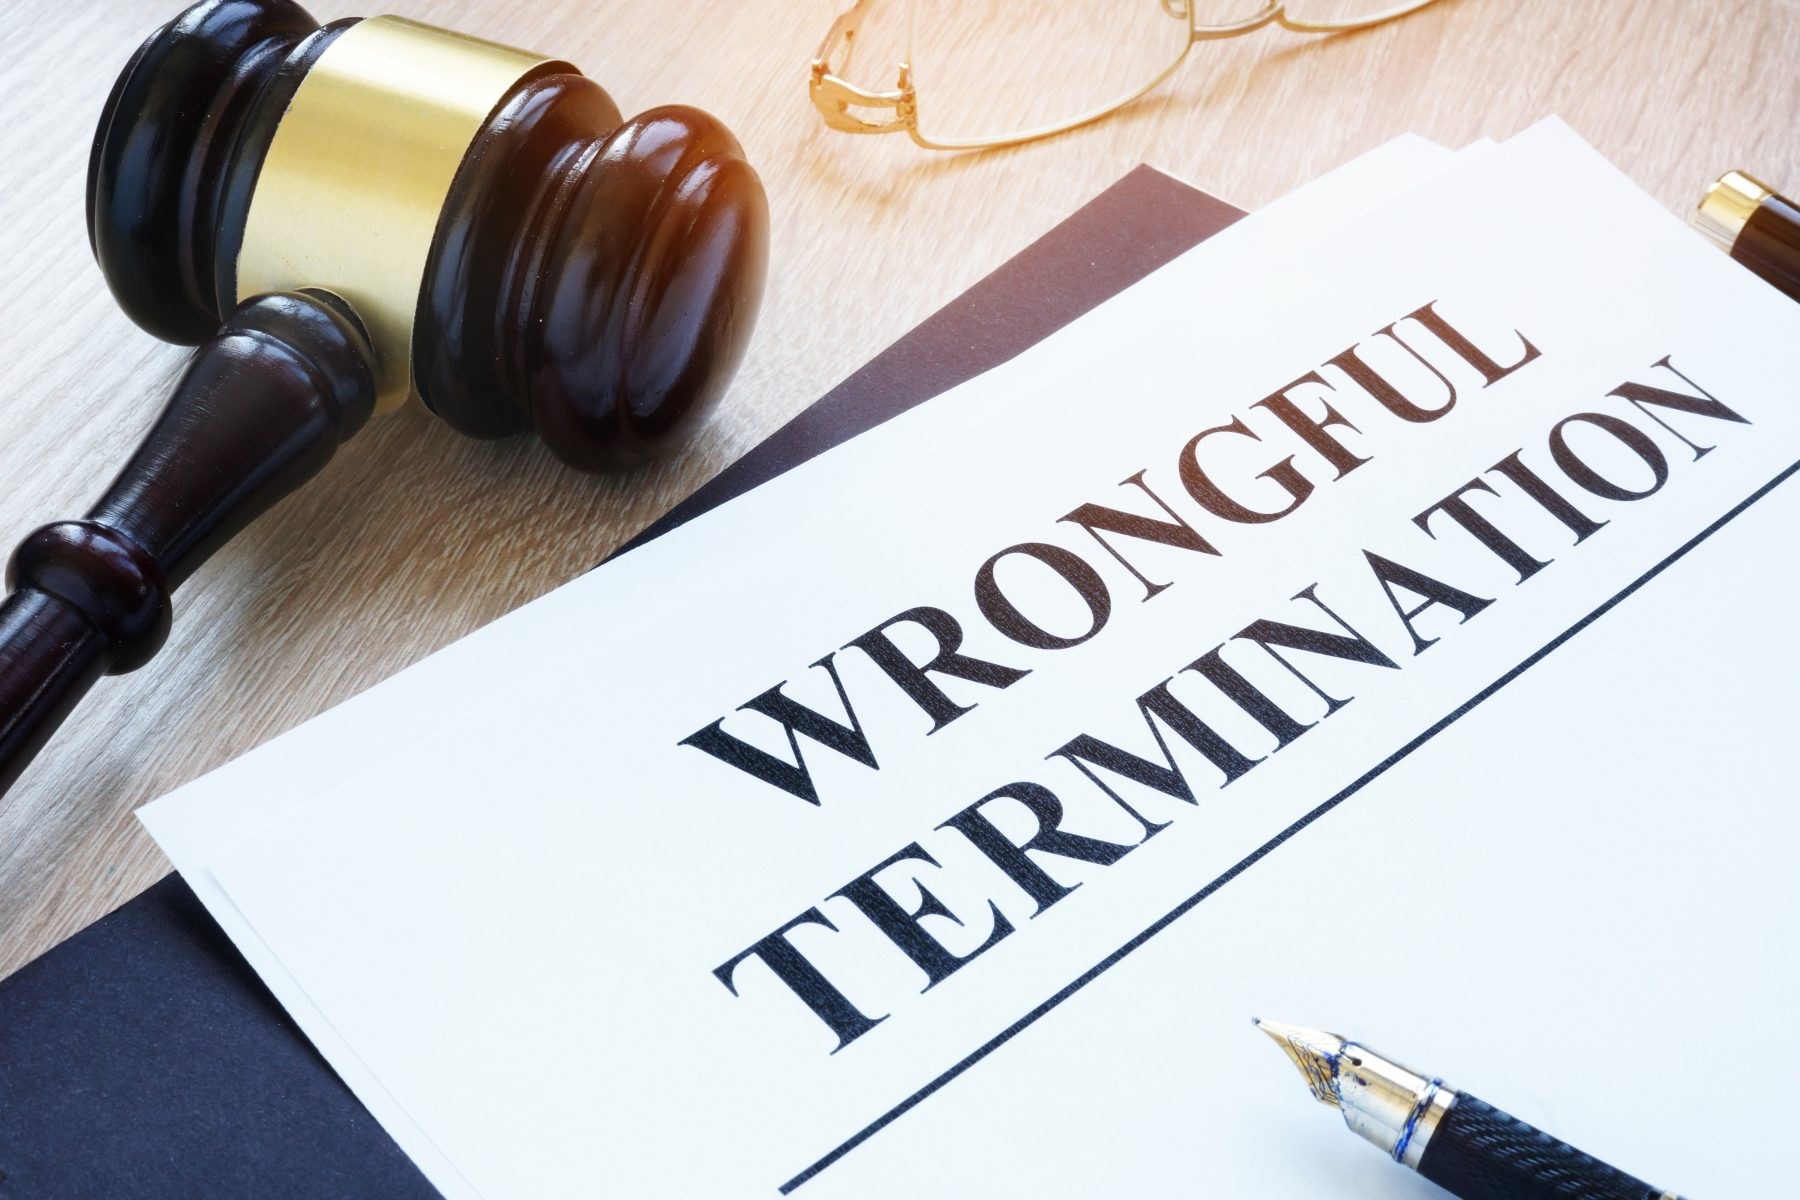 Wrongful termination with a gavel.